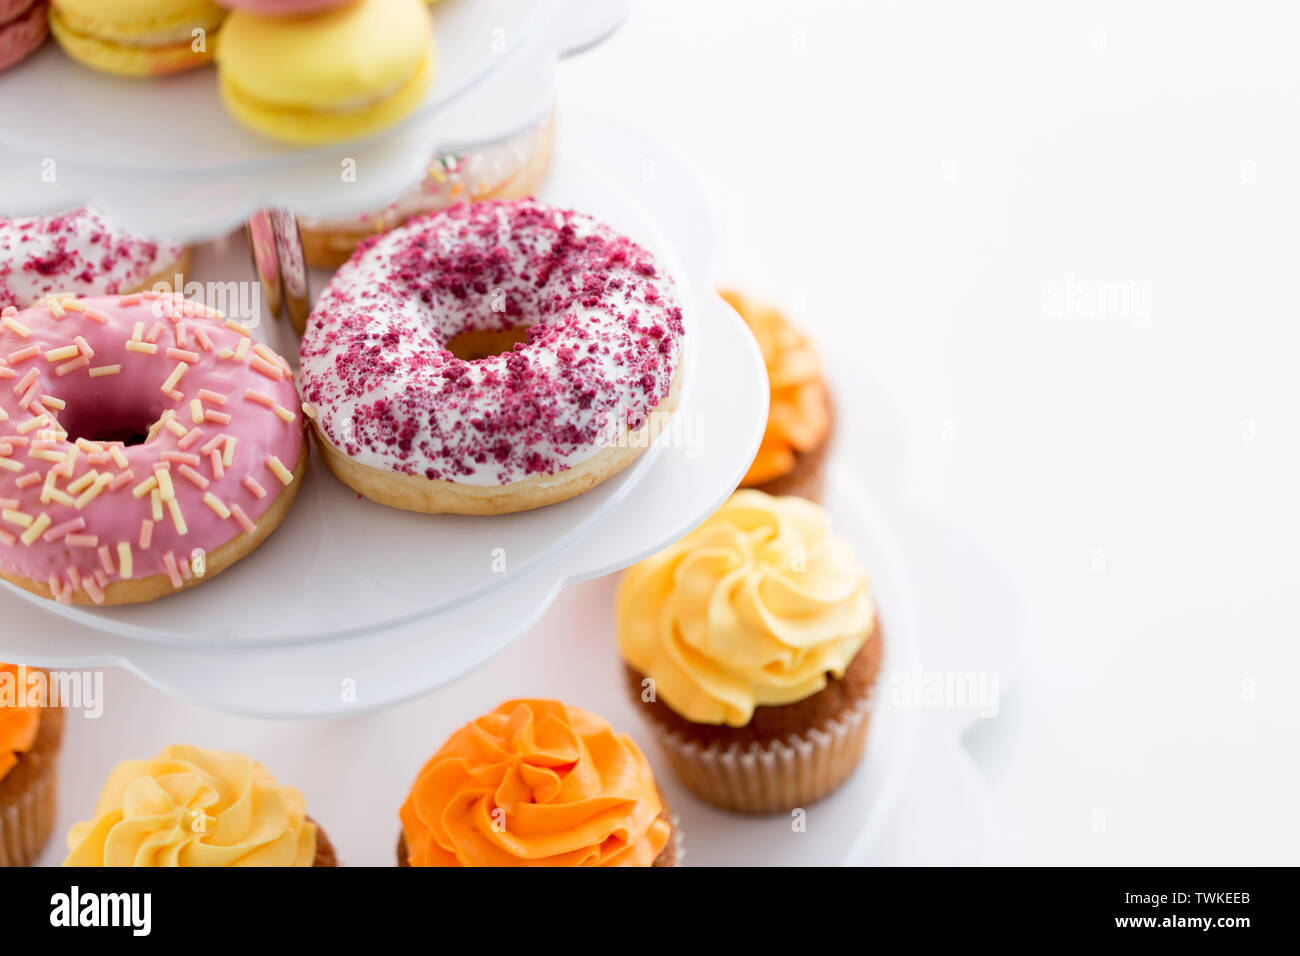 close up of glazed donuts and cupcakes on stand - Stock Image